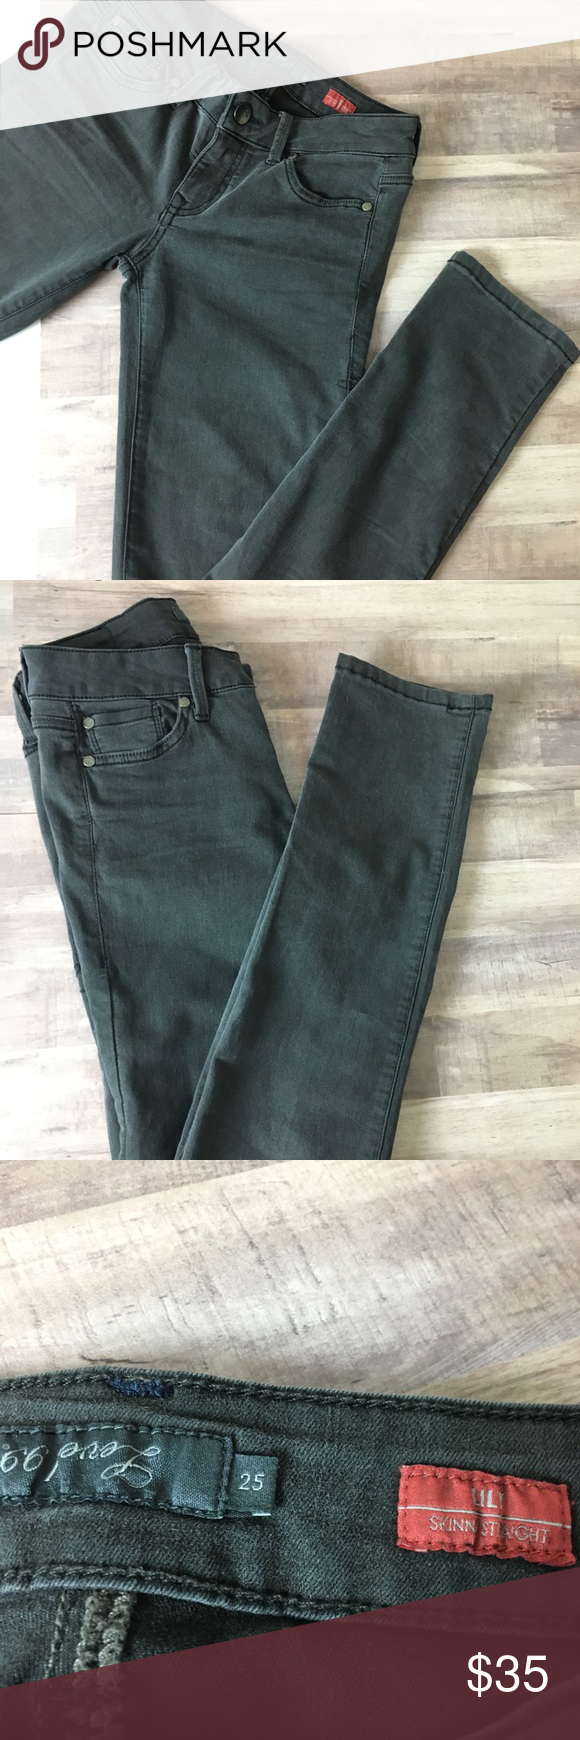 Level 99 25 Lily Skinny Dark Gray Black Jeans Great Used Condition Stretchy Jegging Like BIN A